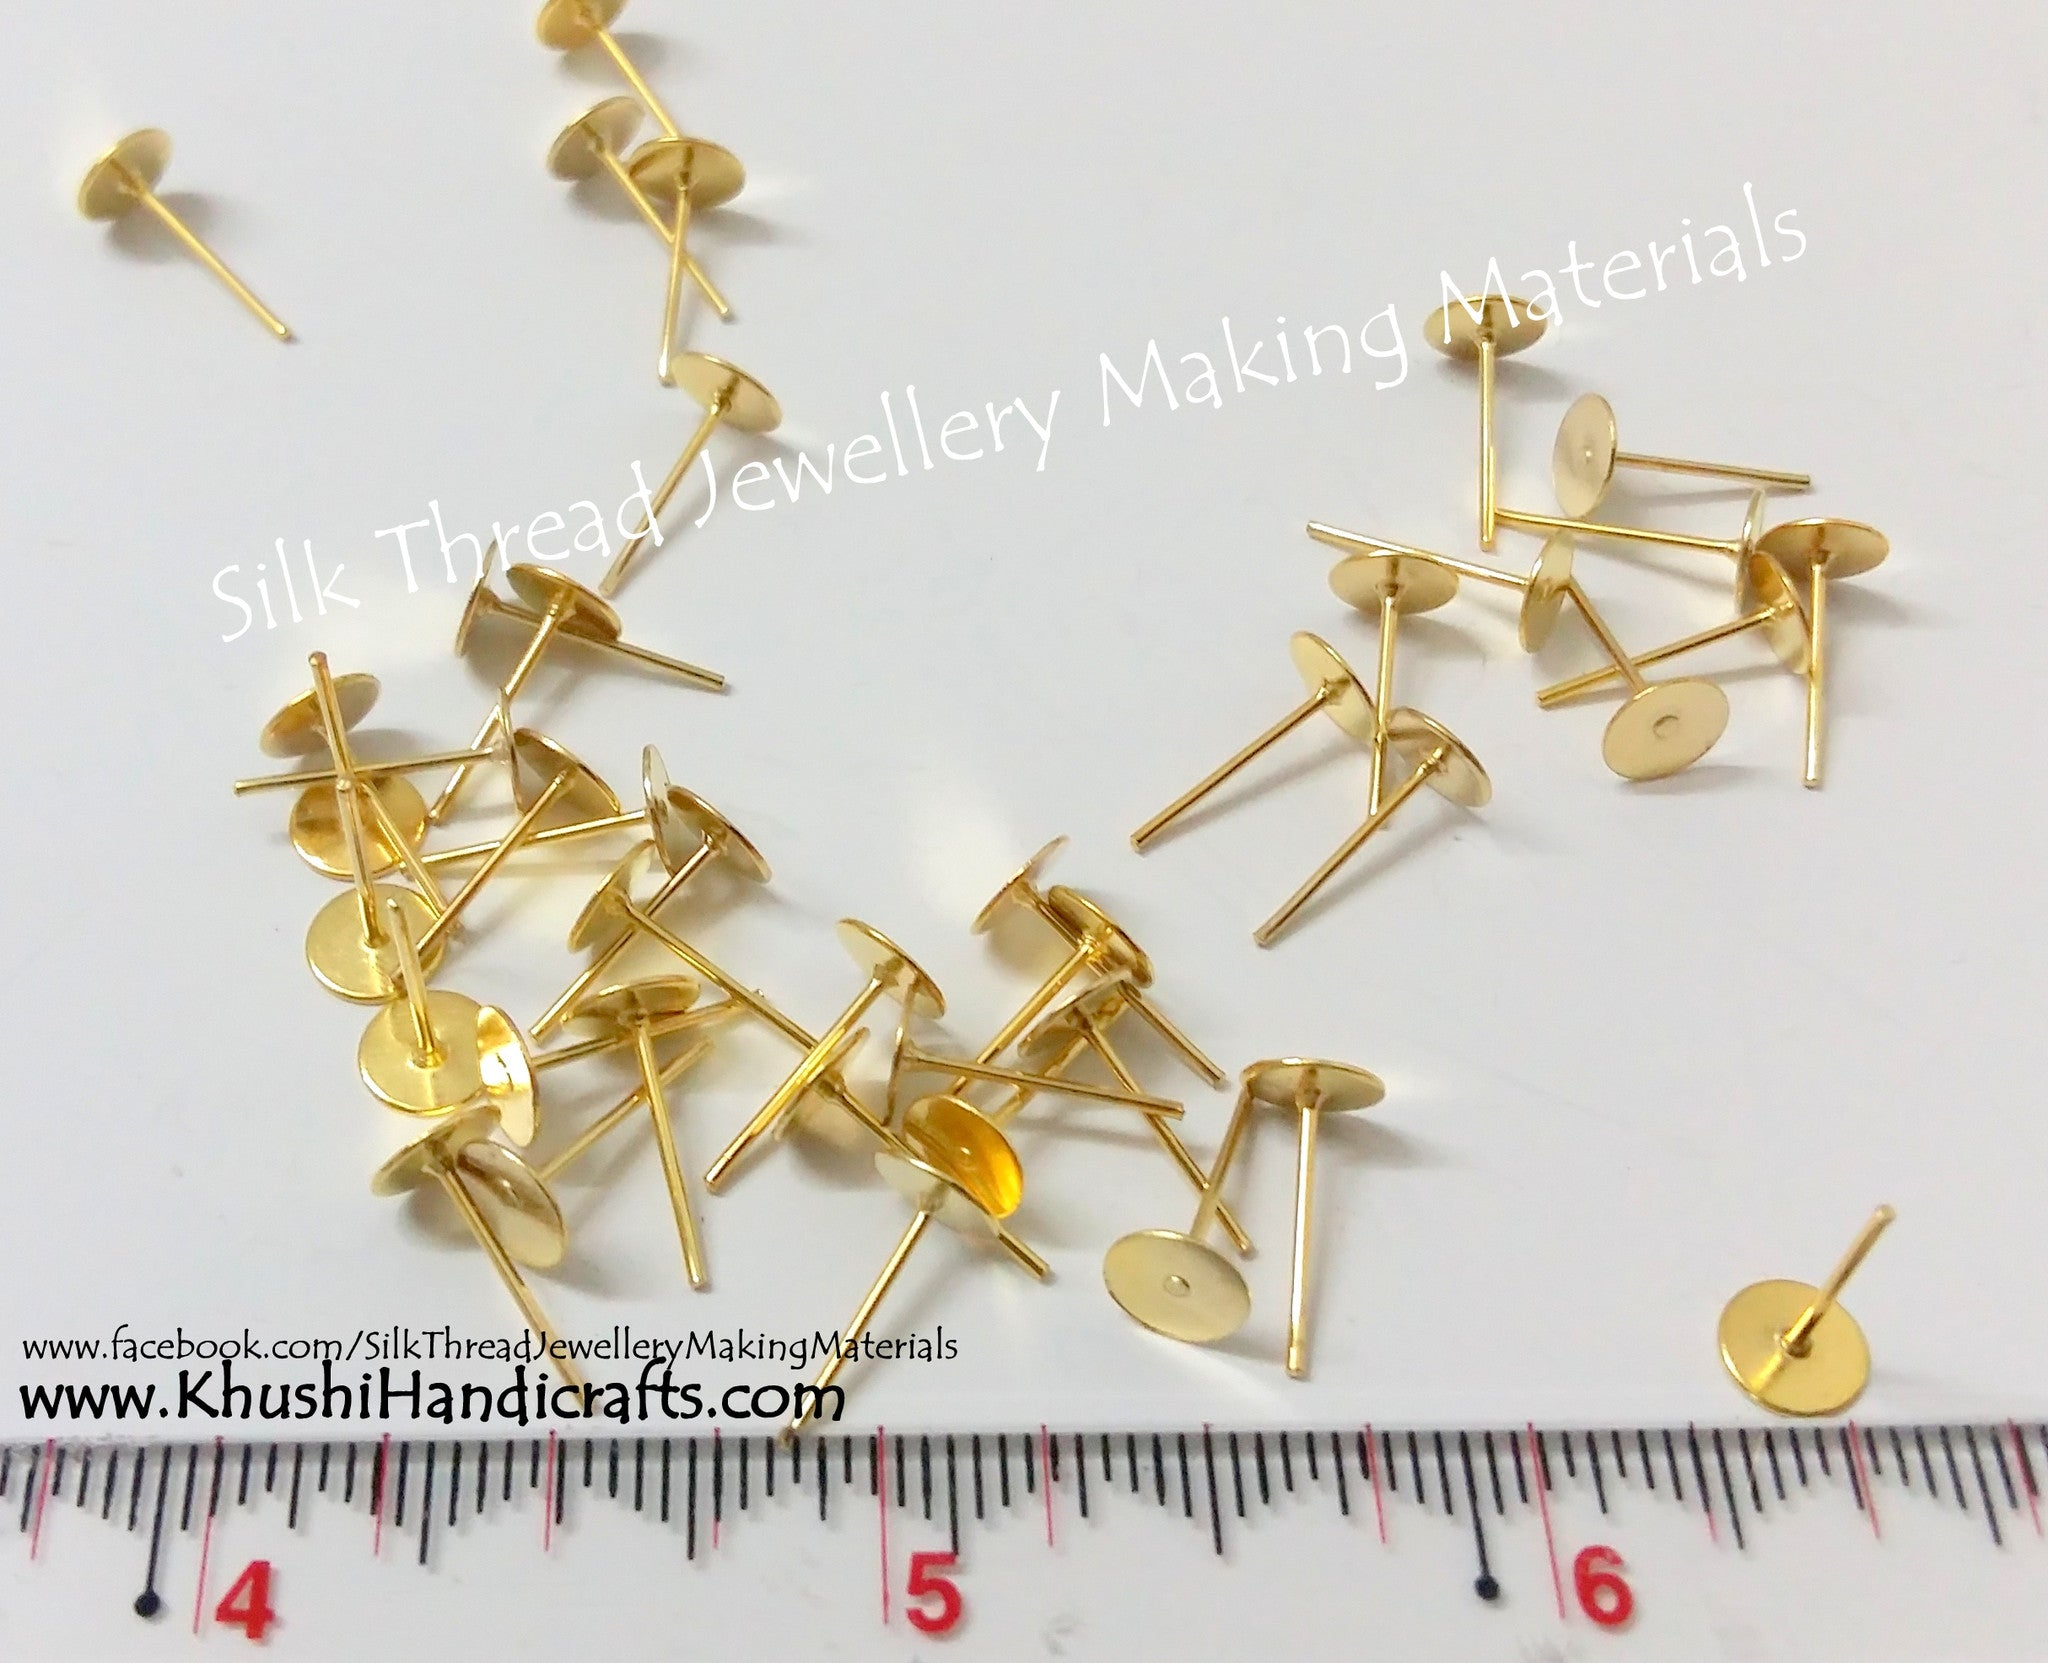 Ear post / Stud base Pack of 10 pairs in Gold and Silver - Khushi Handmade Jewellery